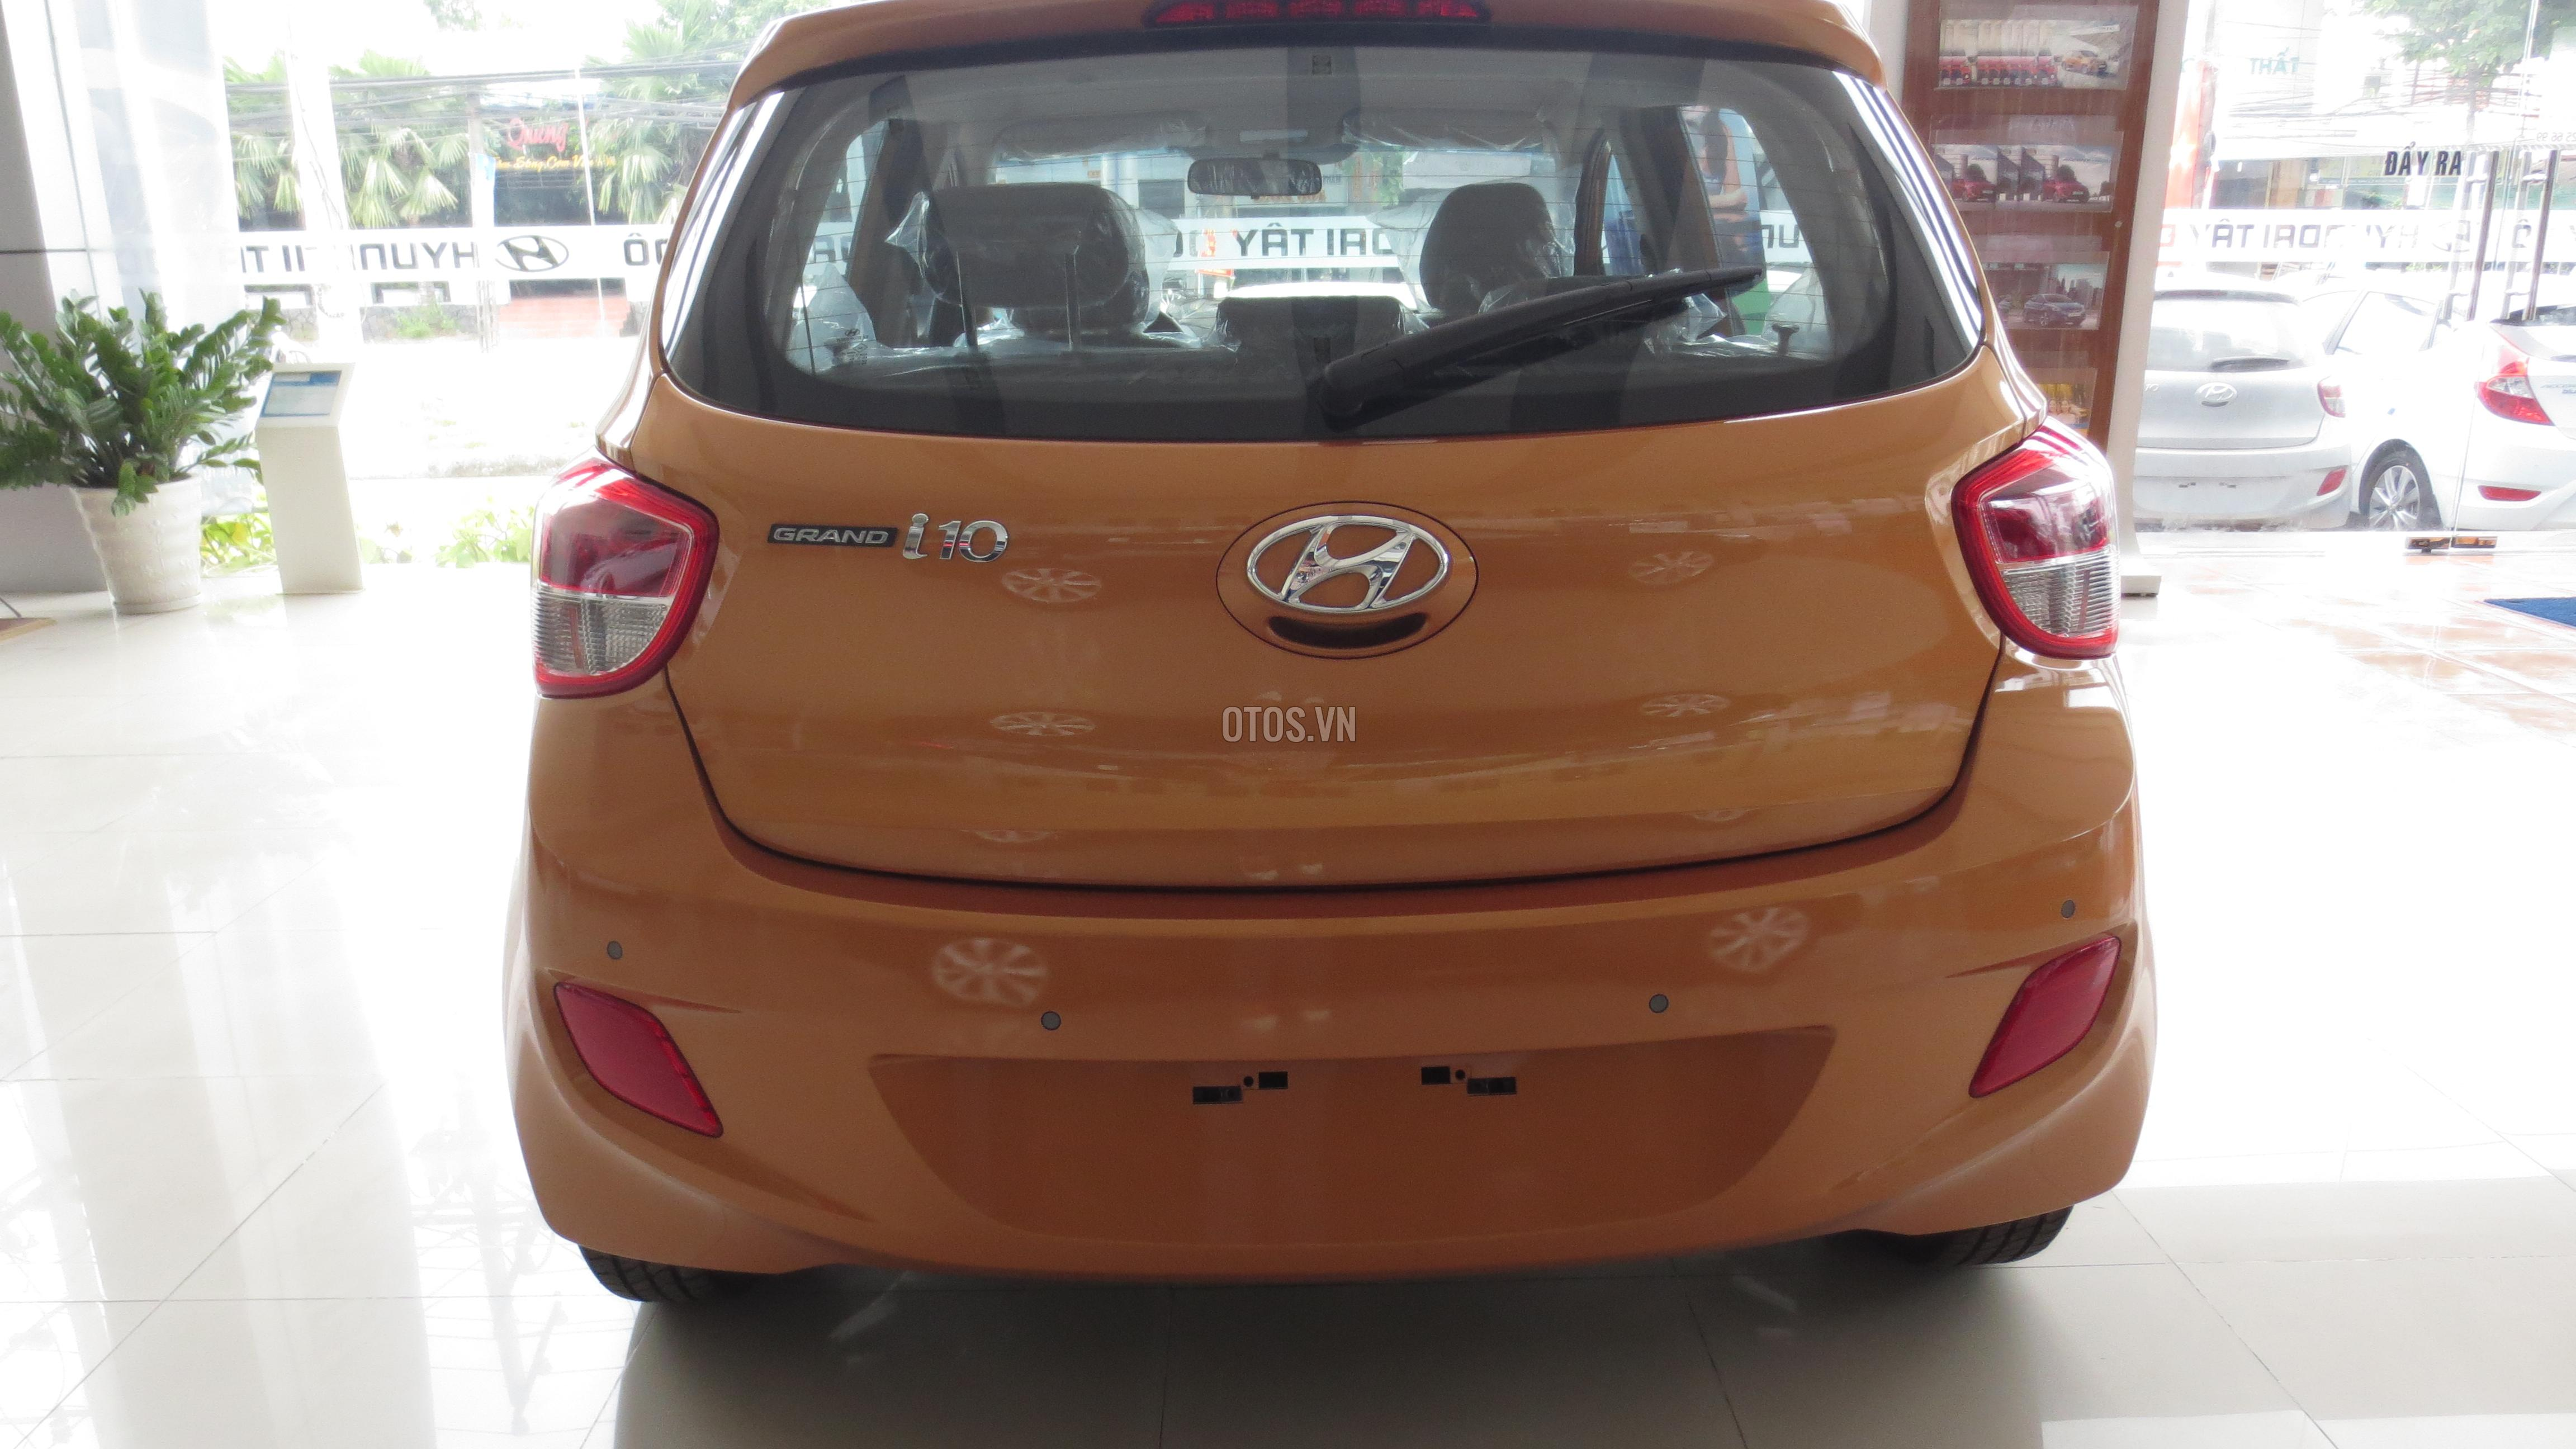 2014 Hyundai Grand i10 1.0 AT